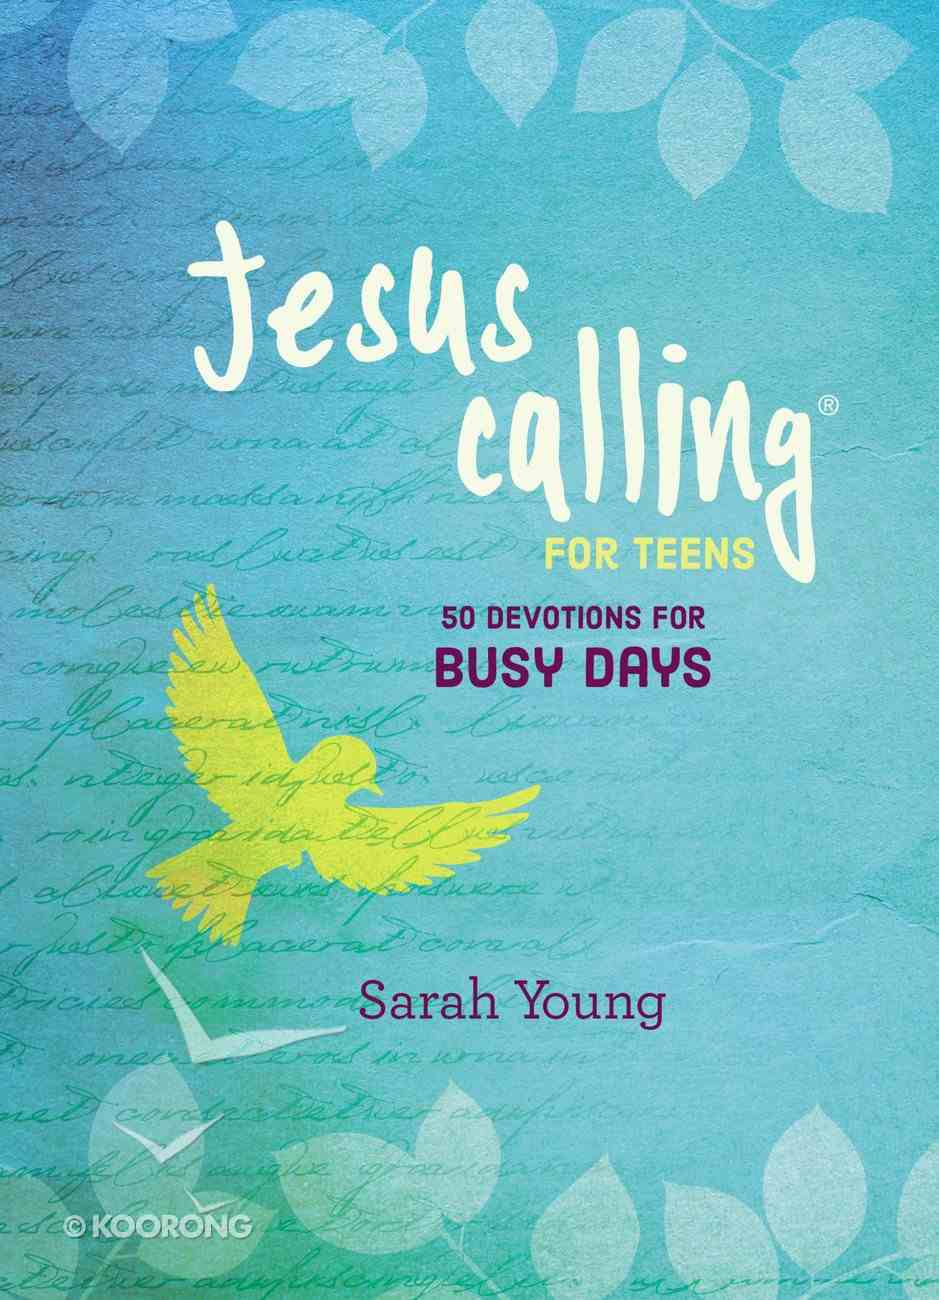 Jesus Calling For Teens: 50 Devotions For Busy Days Hardback